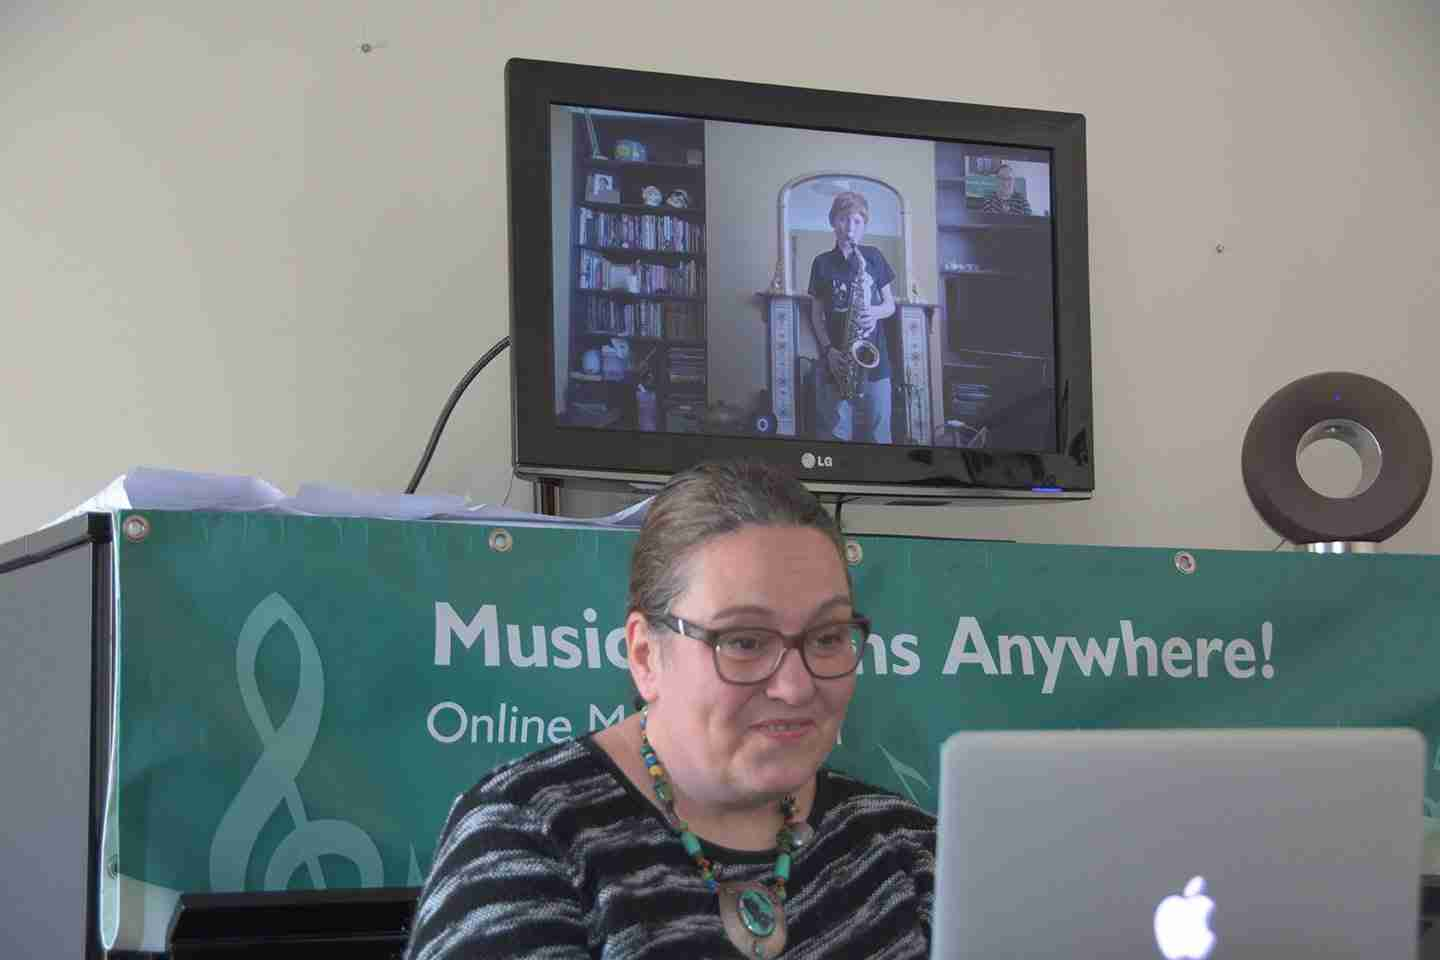 23-music-lessons-anywhere-online-music-lessons-concert-2018